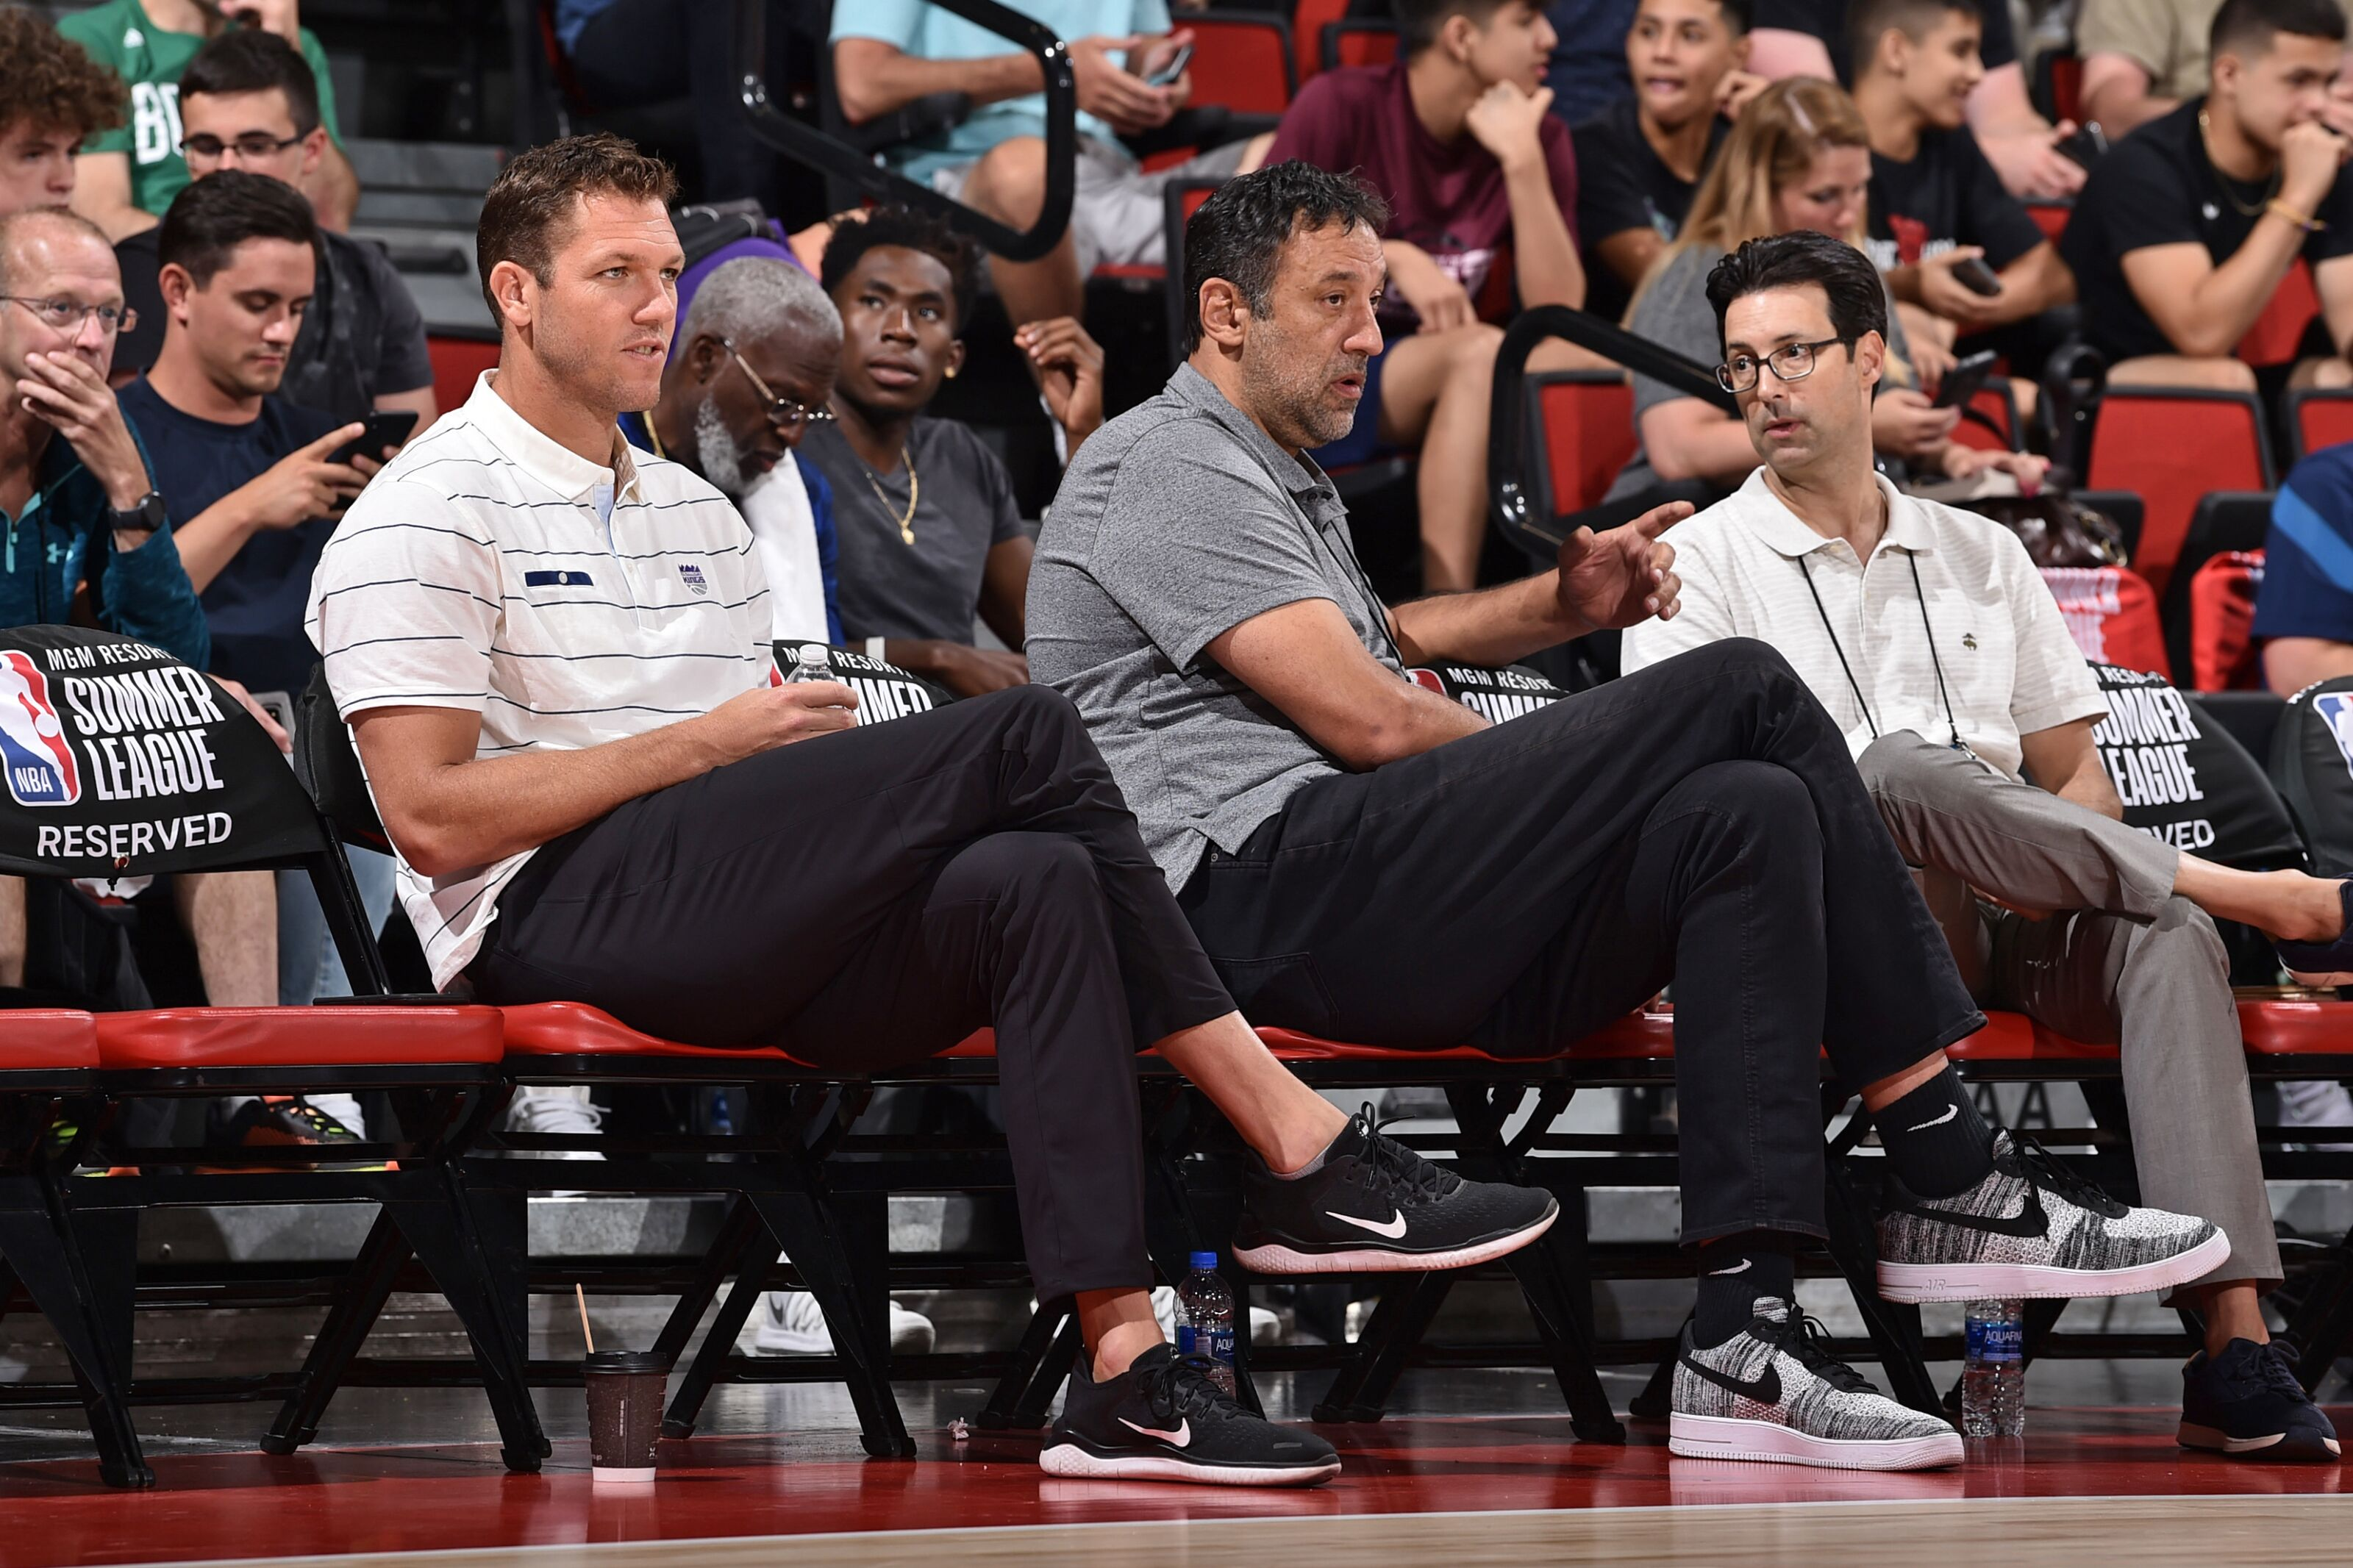 Sacramento Kings: Luke Walton Cleared of Sexually Assault Charges